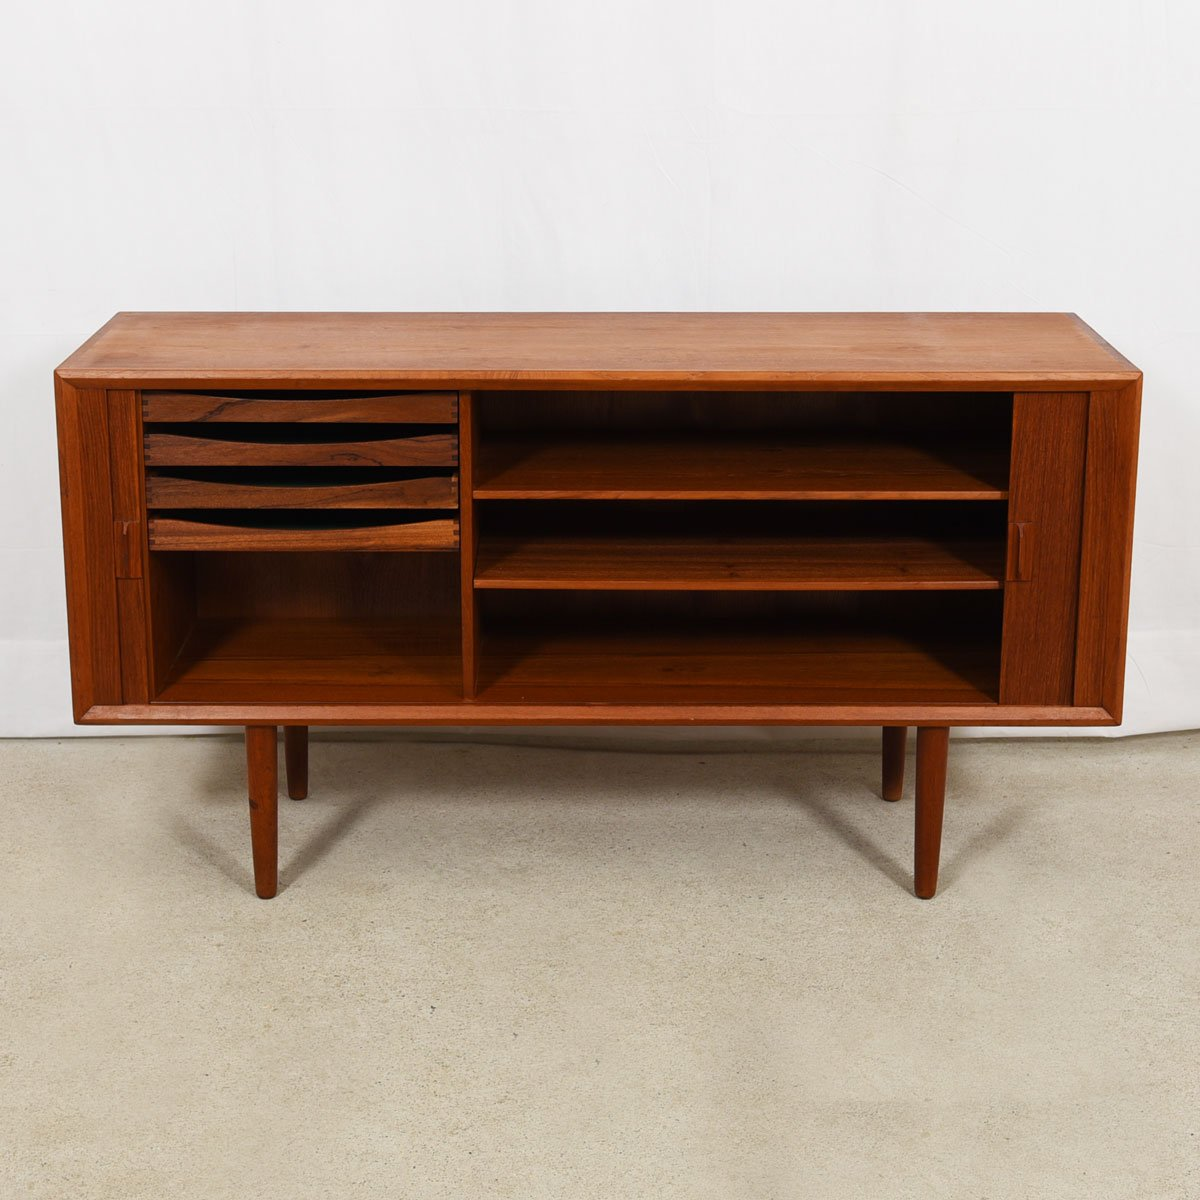 59″ Danish Teak Sideboard — Tambour Door Room Divider